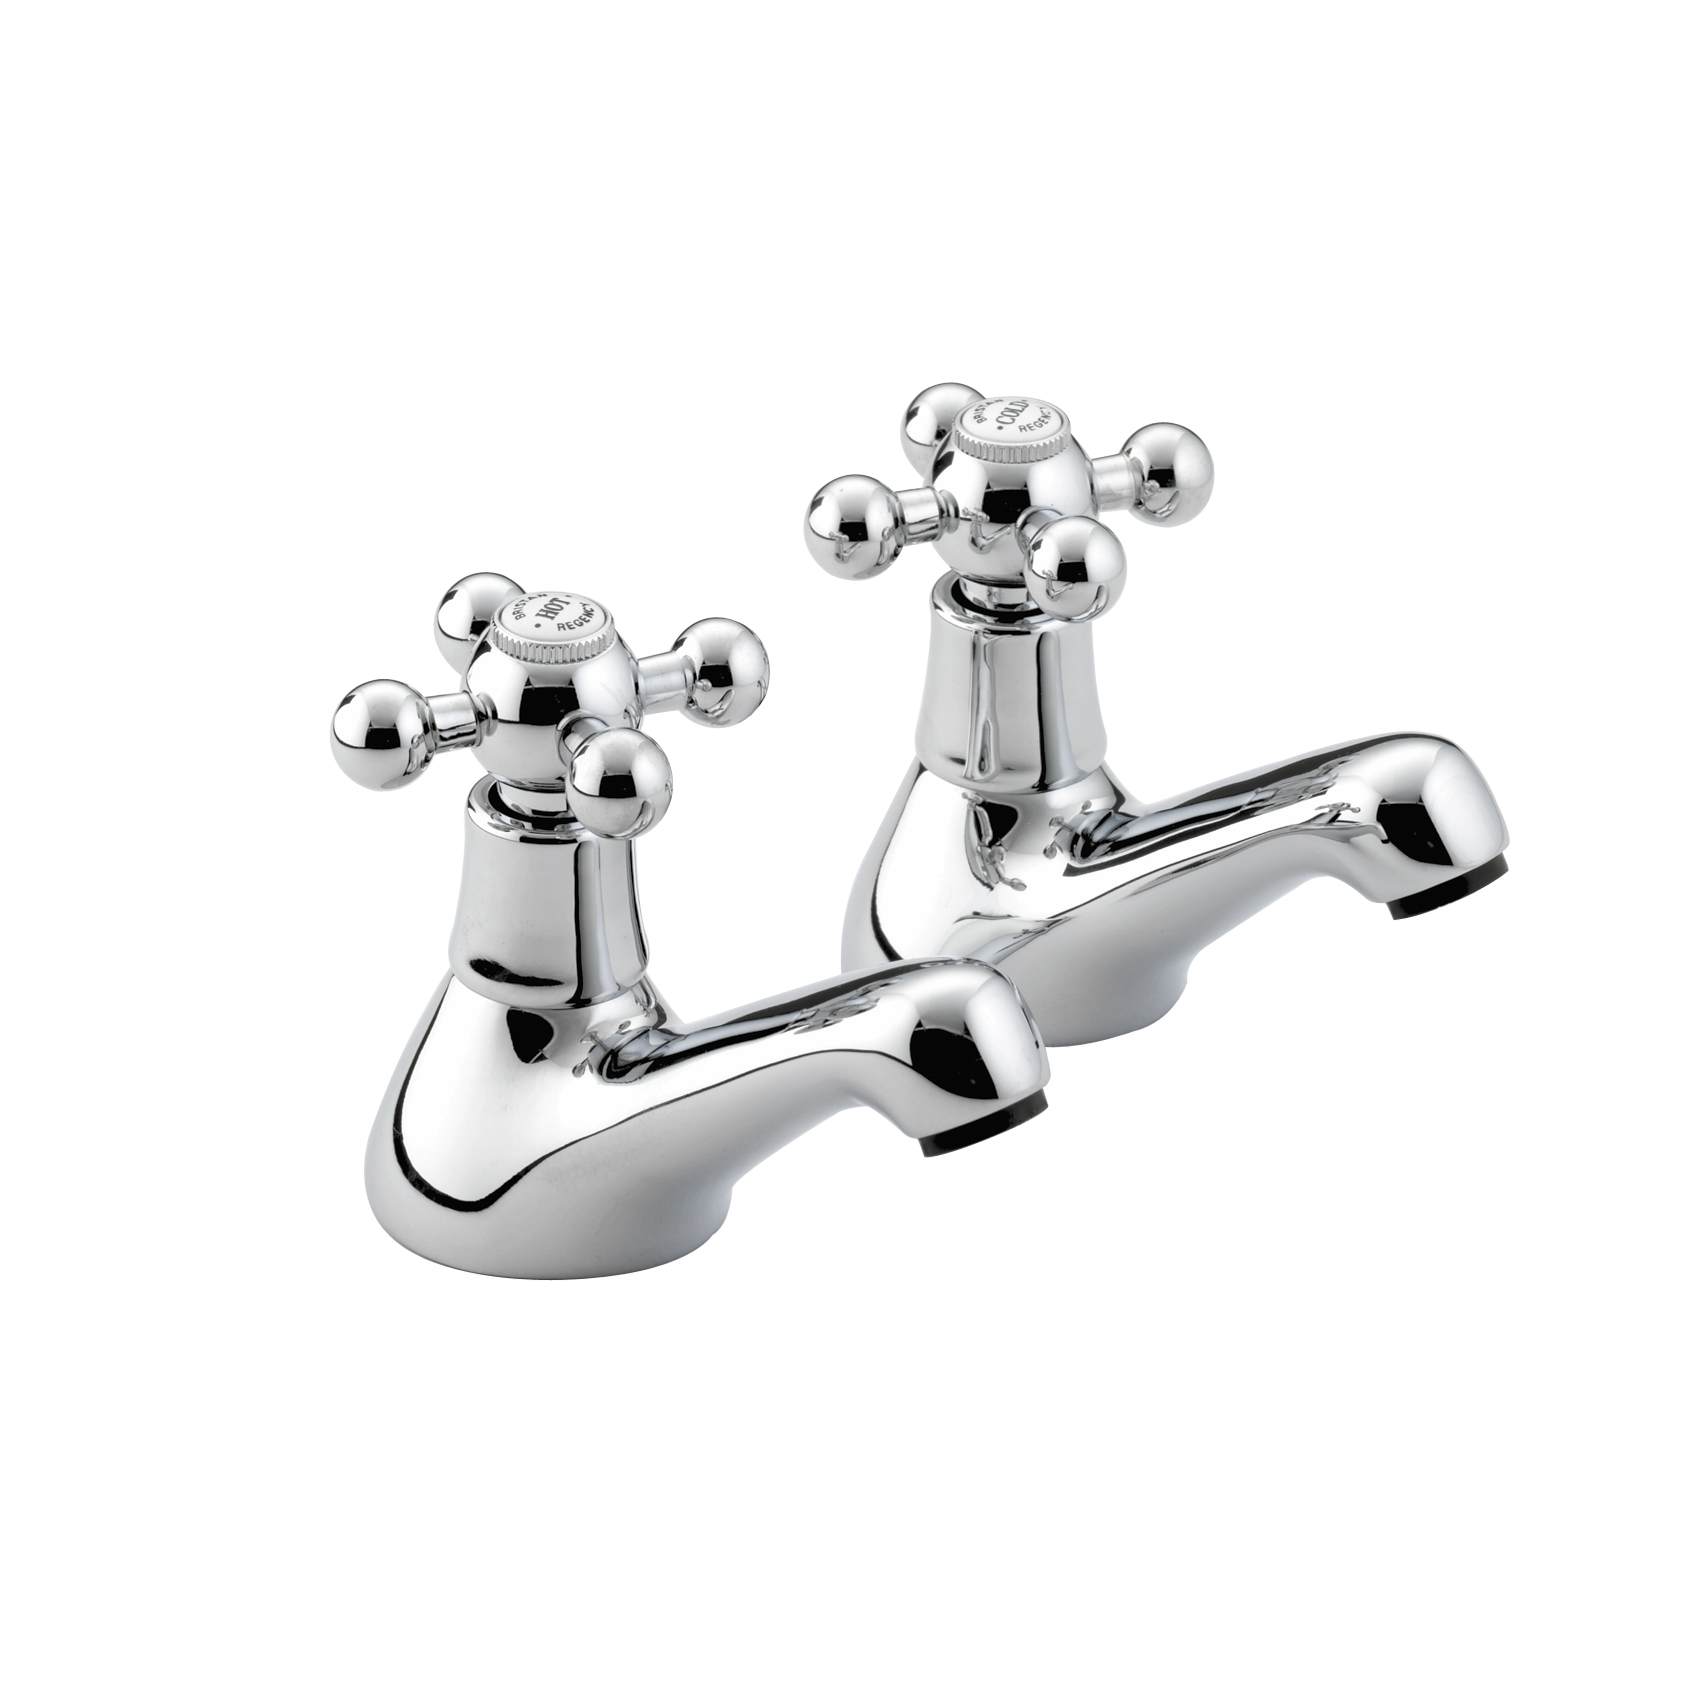 BRISTAN REGENCY BATH TAPS CHROME (PAIR)